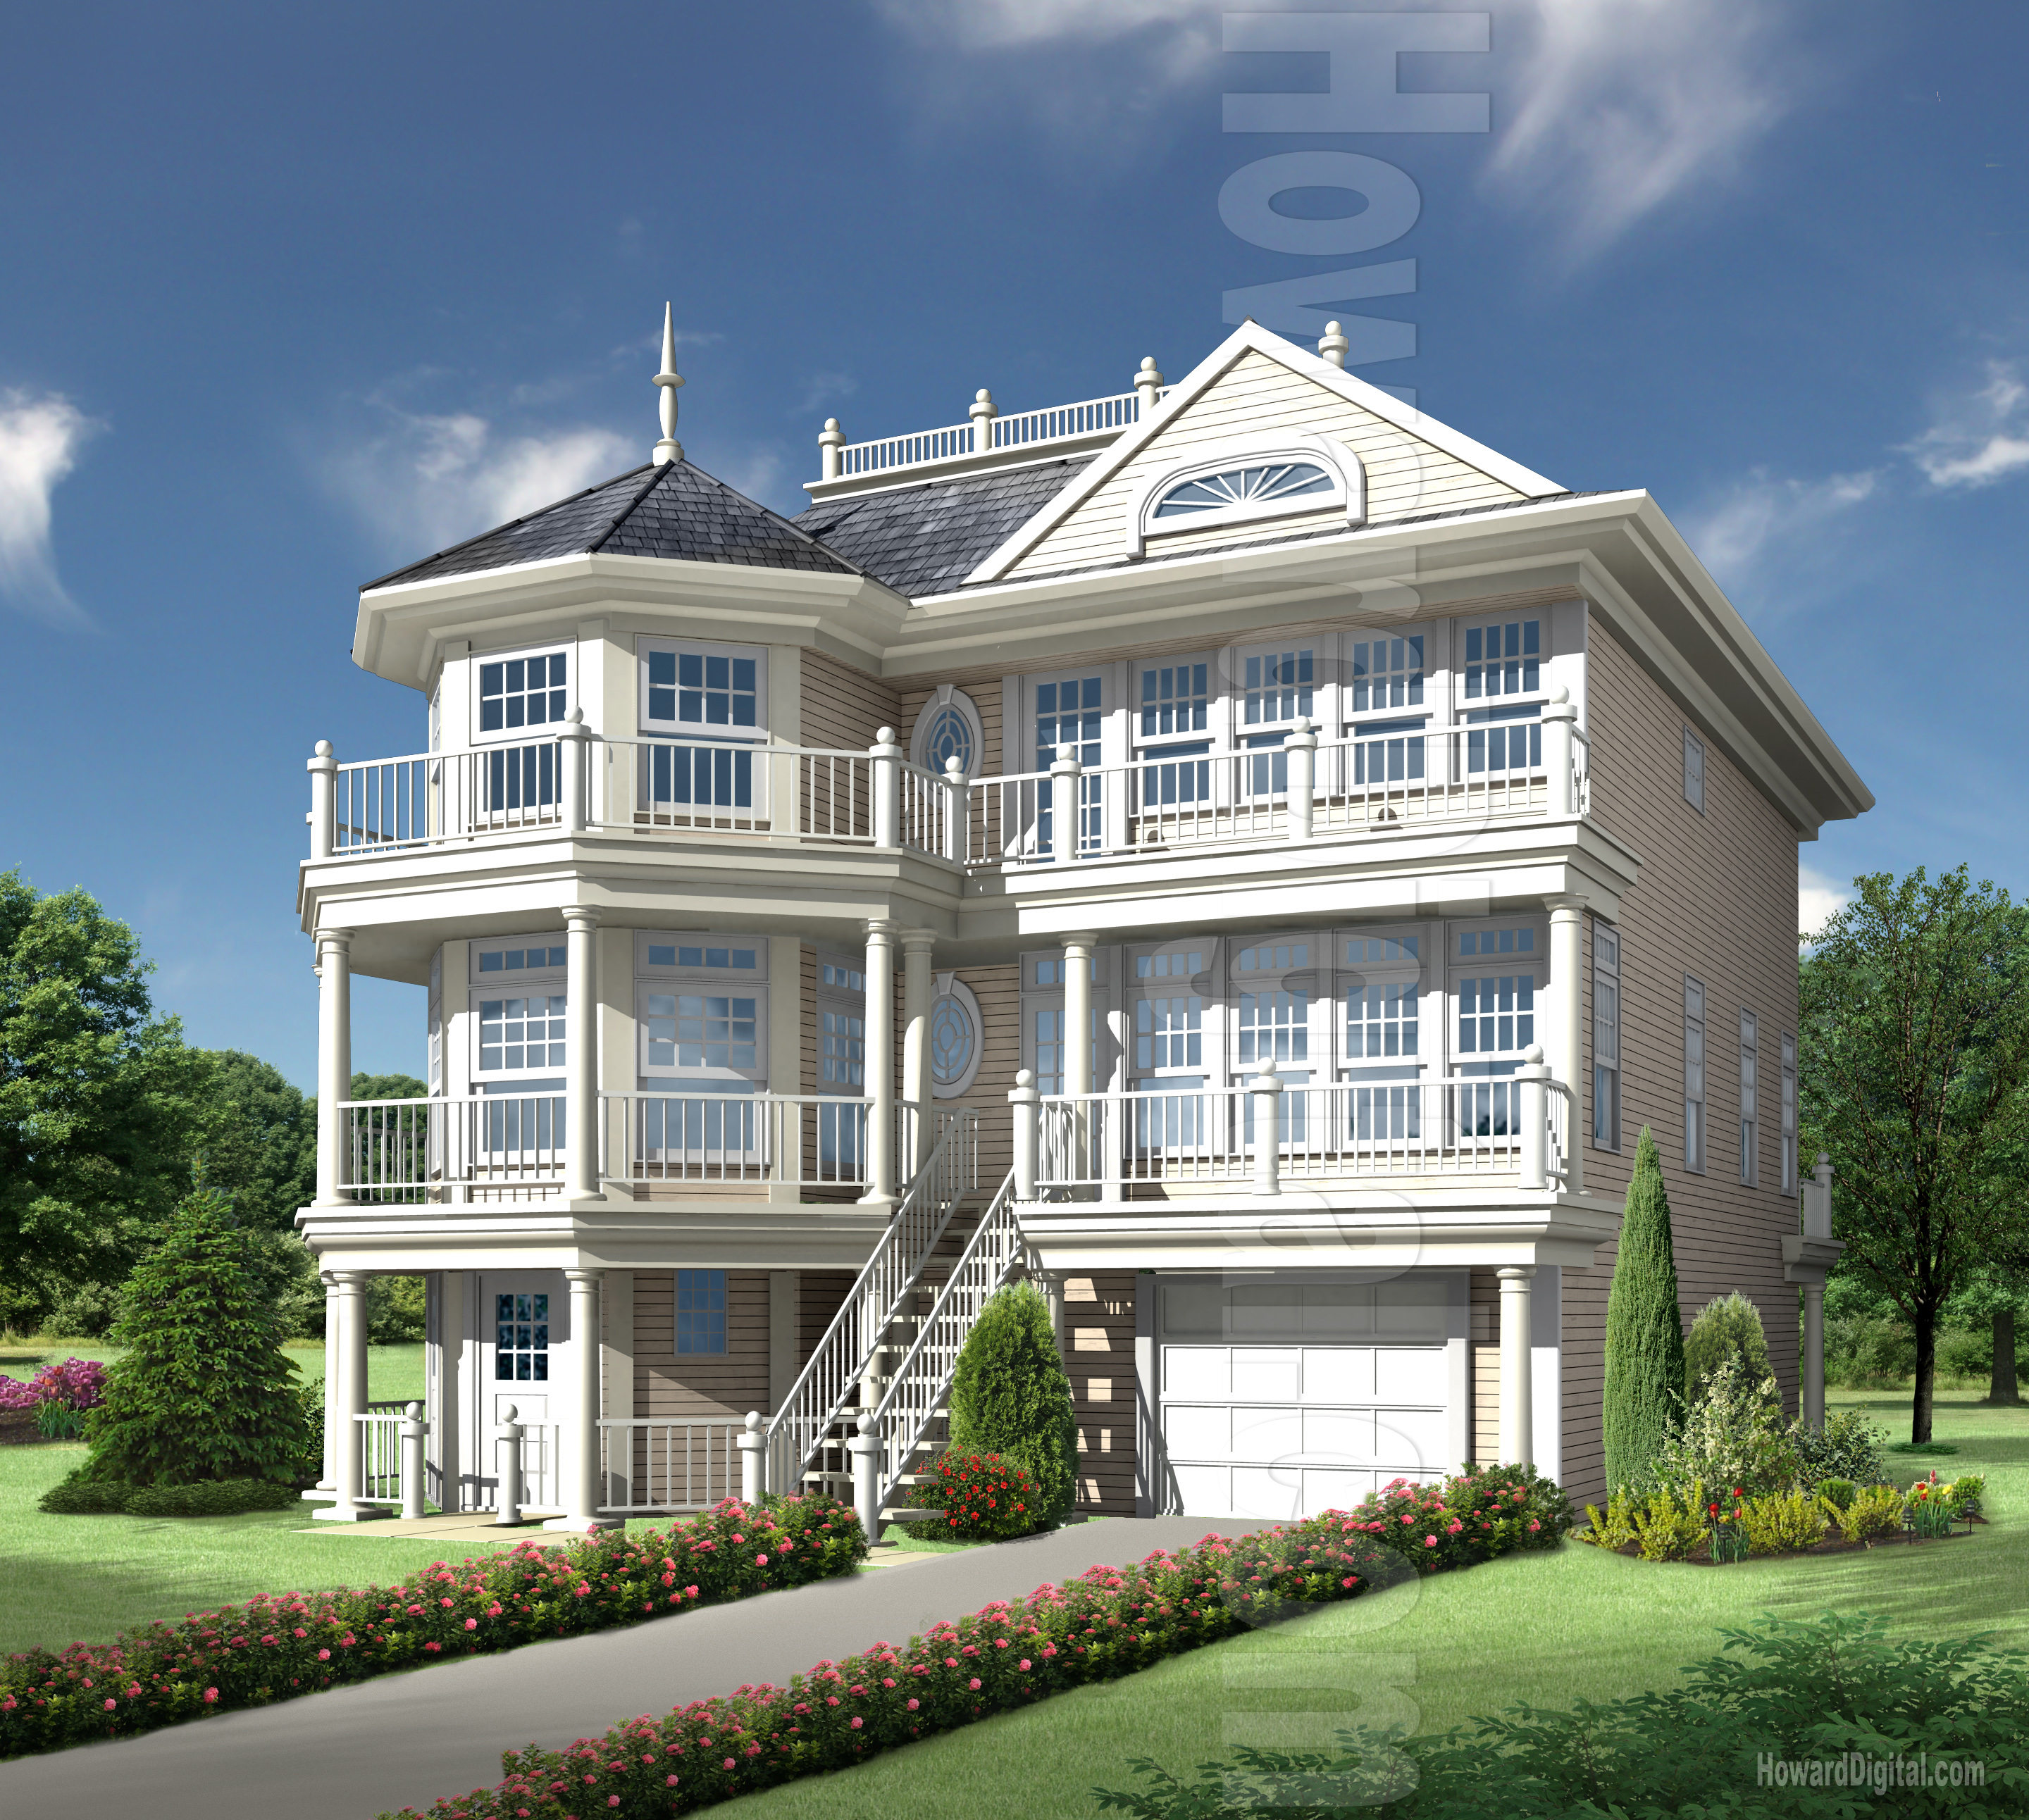 House Rendering   Howard Digital Residential single family Home Illustrations